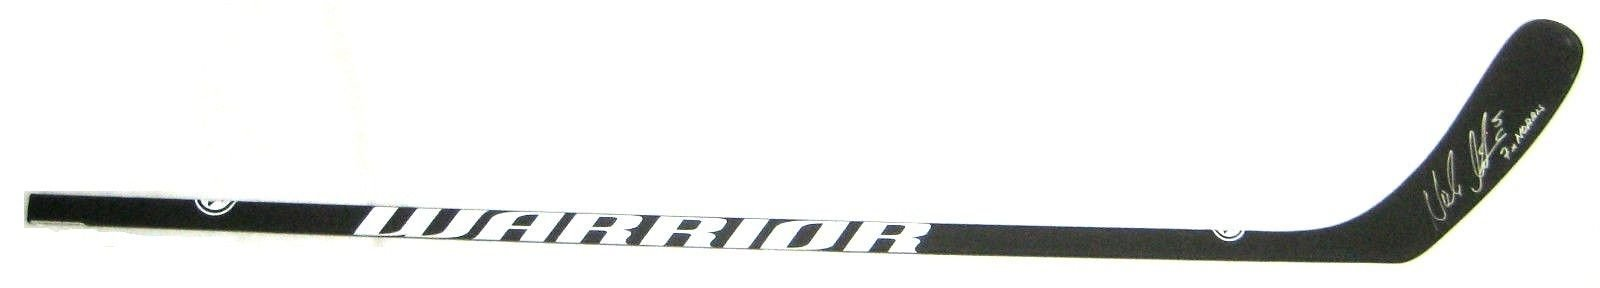 JSA Authentic Nicklas Lidstrom Autographed Signed Warrior 7X Norris Stick Red Wings